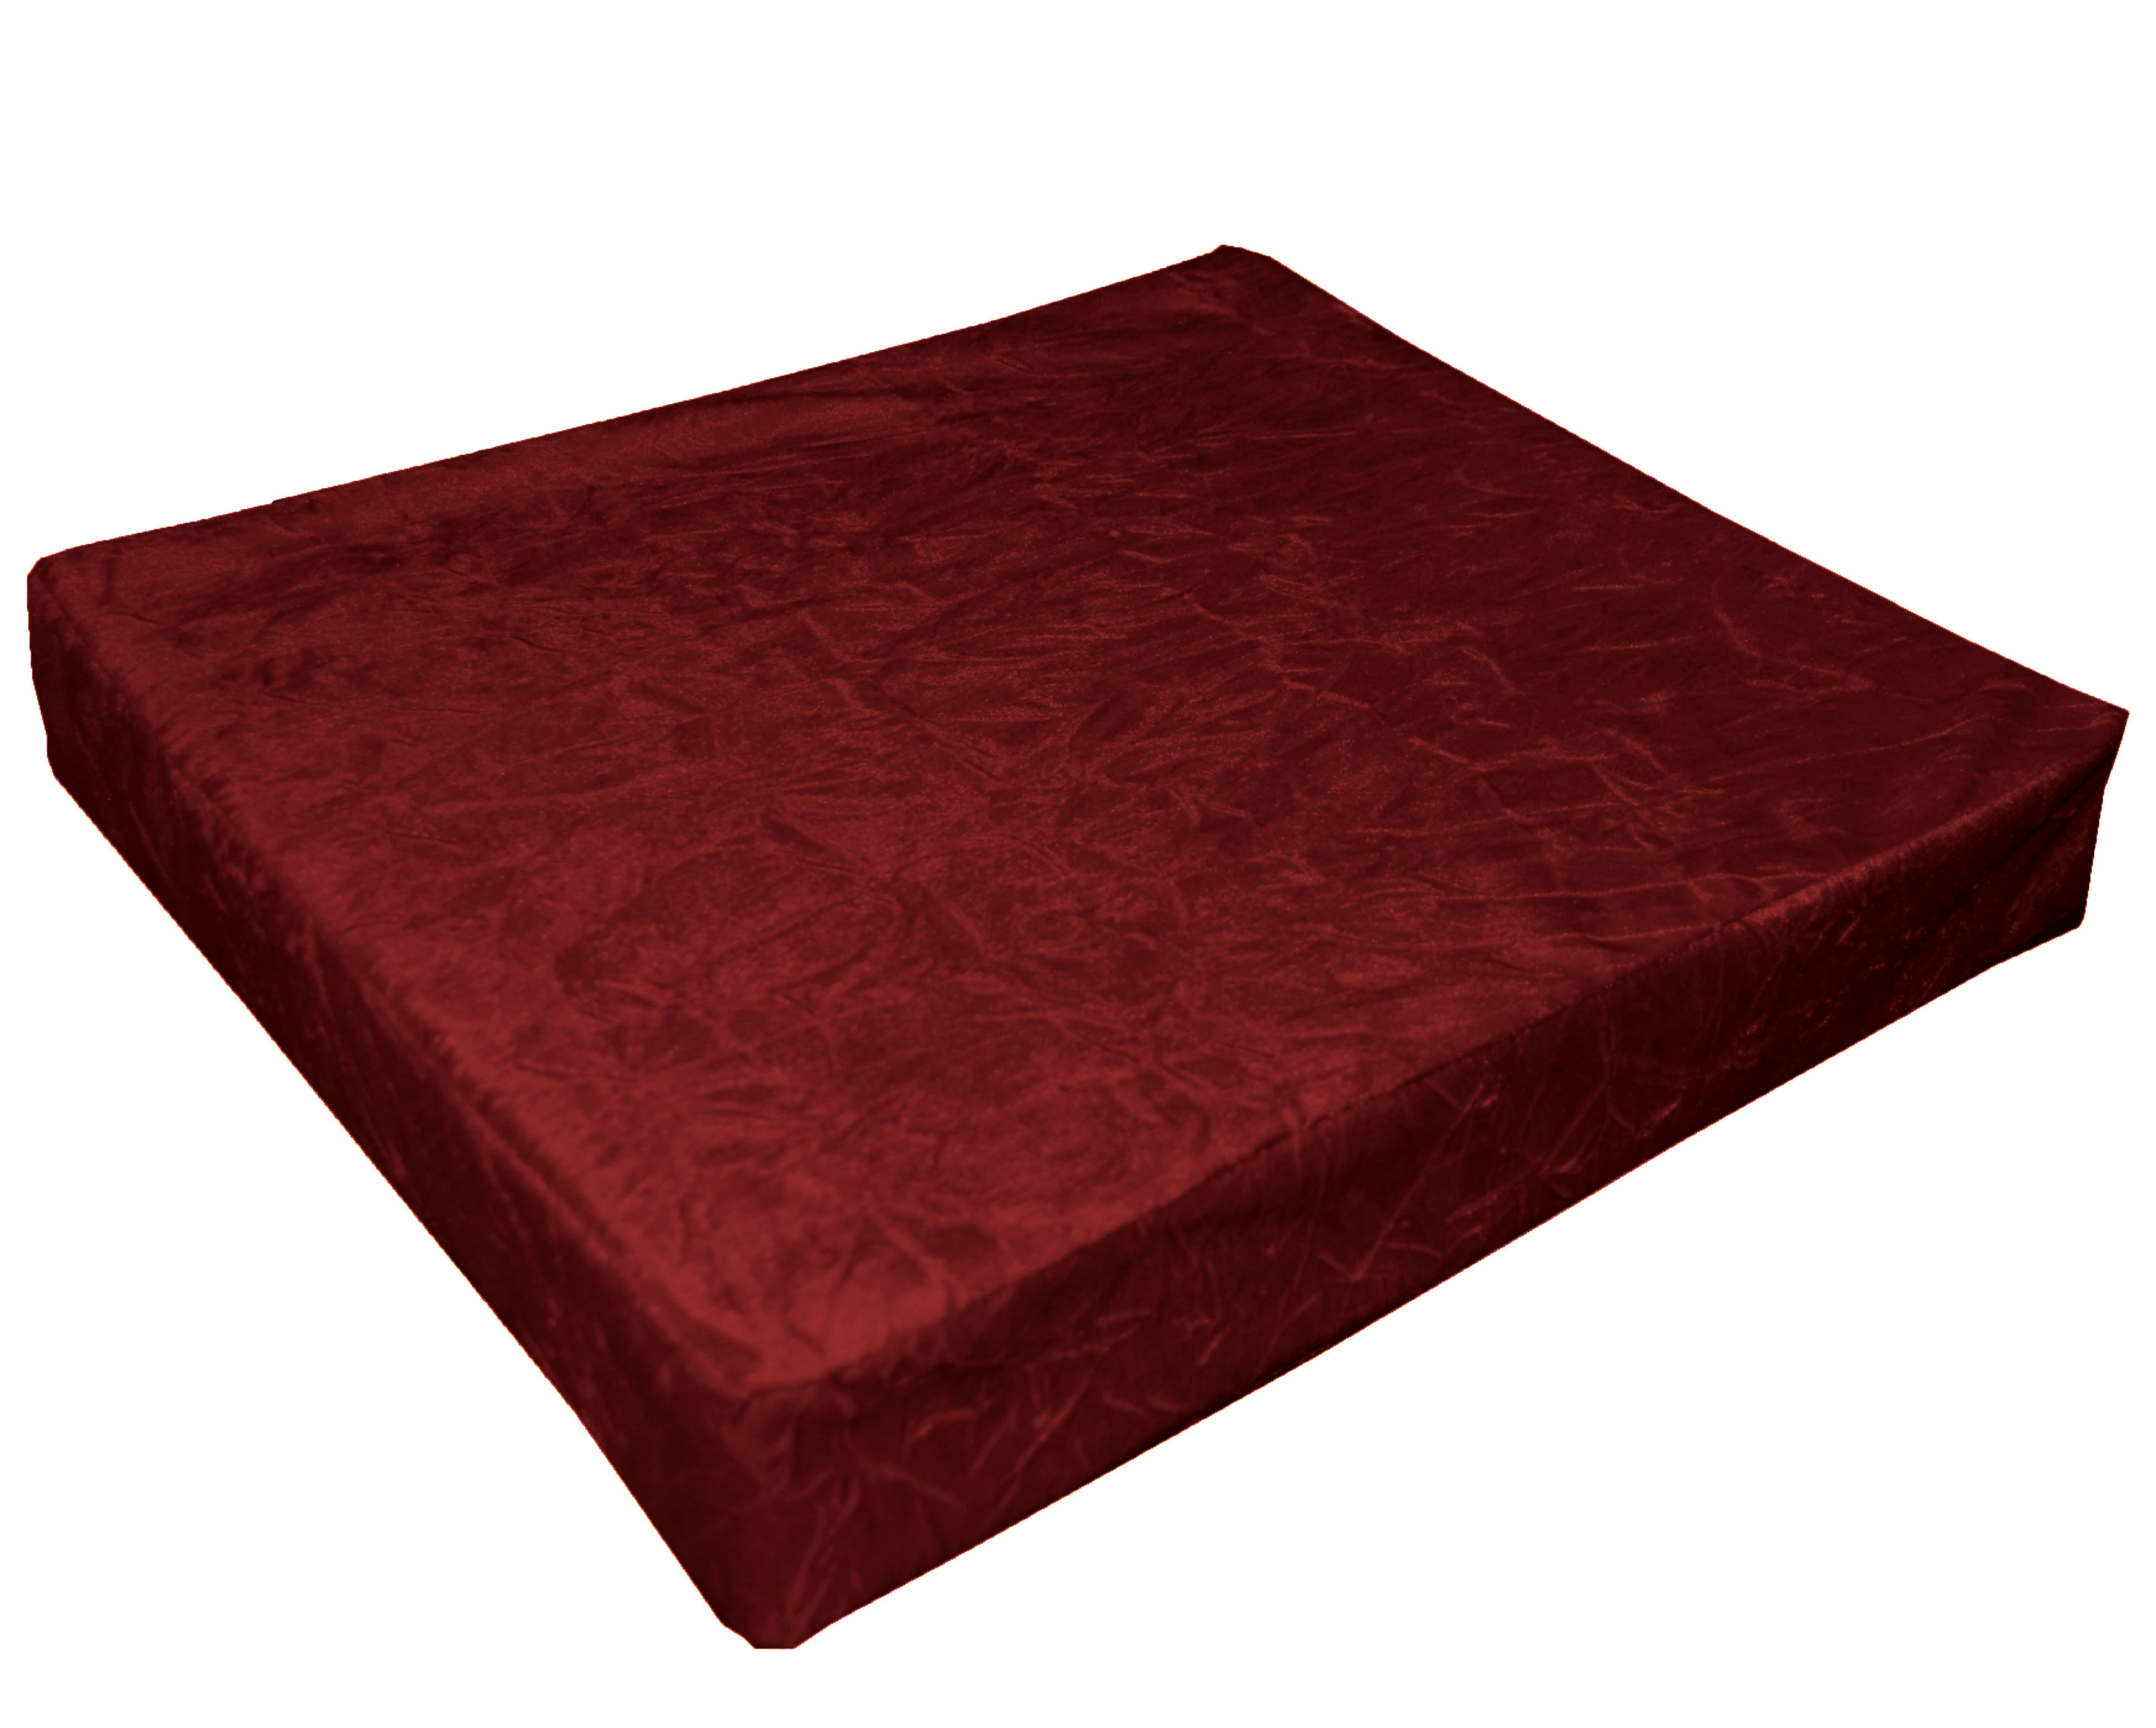 how much fabric to cover a chair cushion white wicker rocking uk mn113t deep wine red crushed velvet style 3d box sofa seat